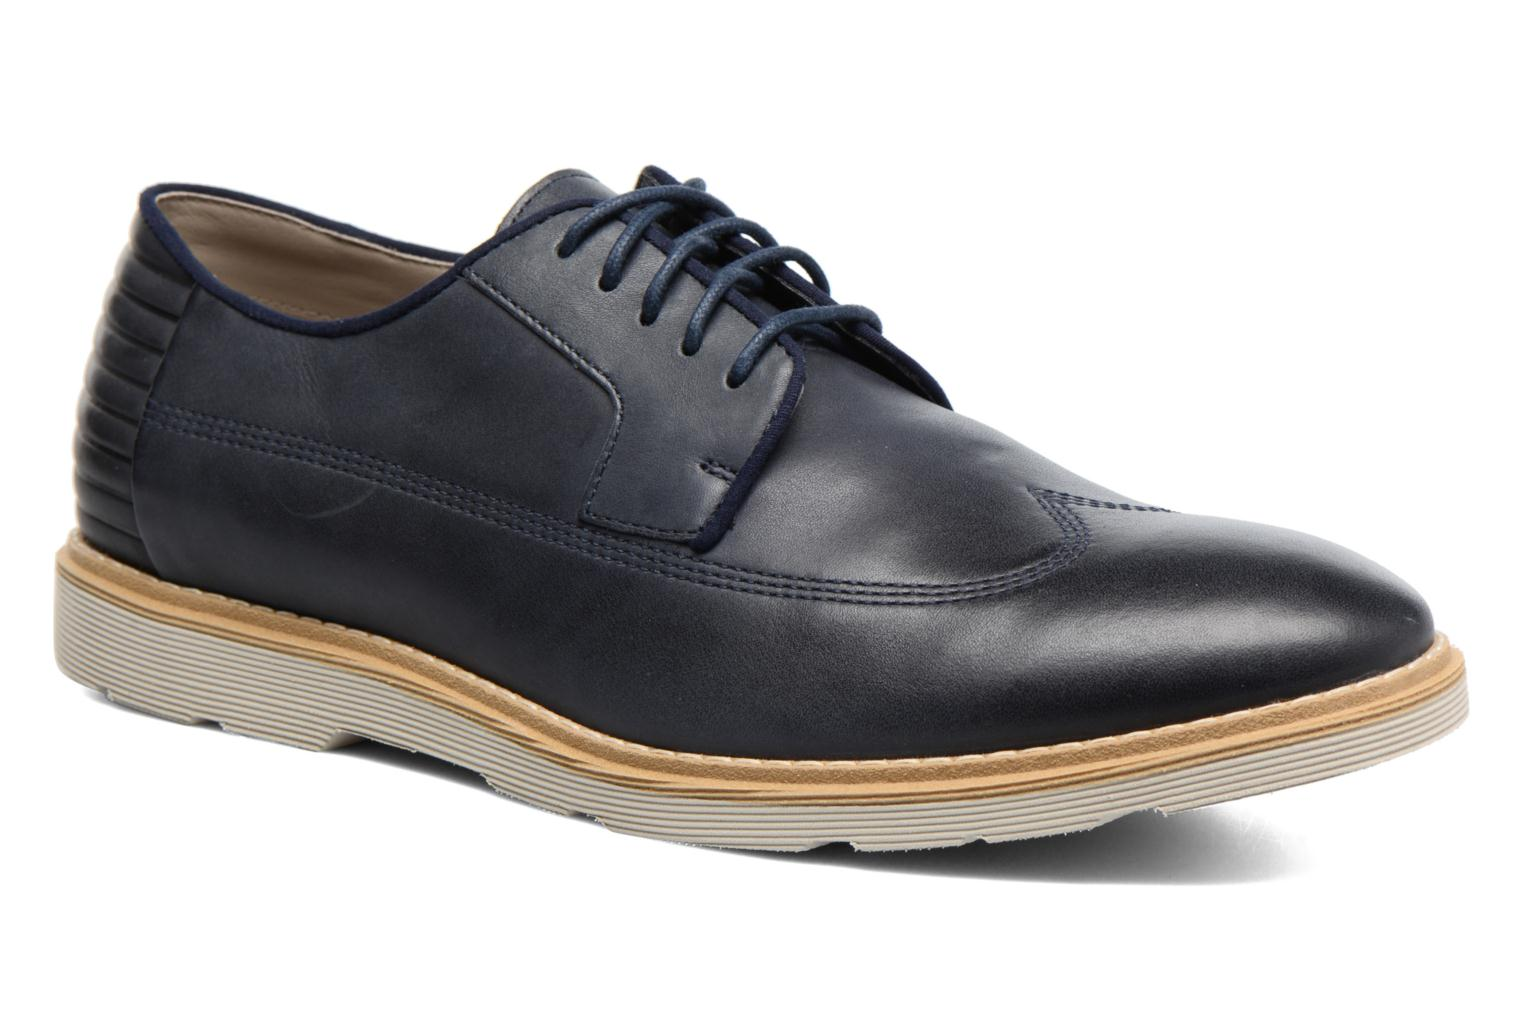 Marques Chaussure homme Clarks homme Gambeson Style Navy leather